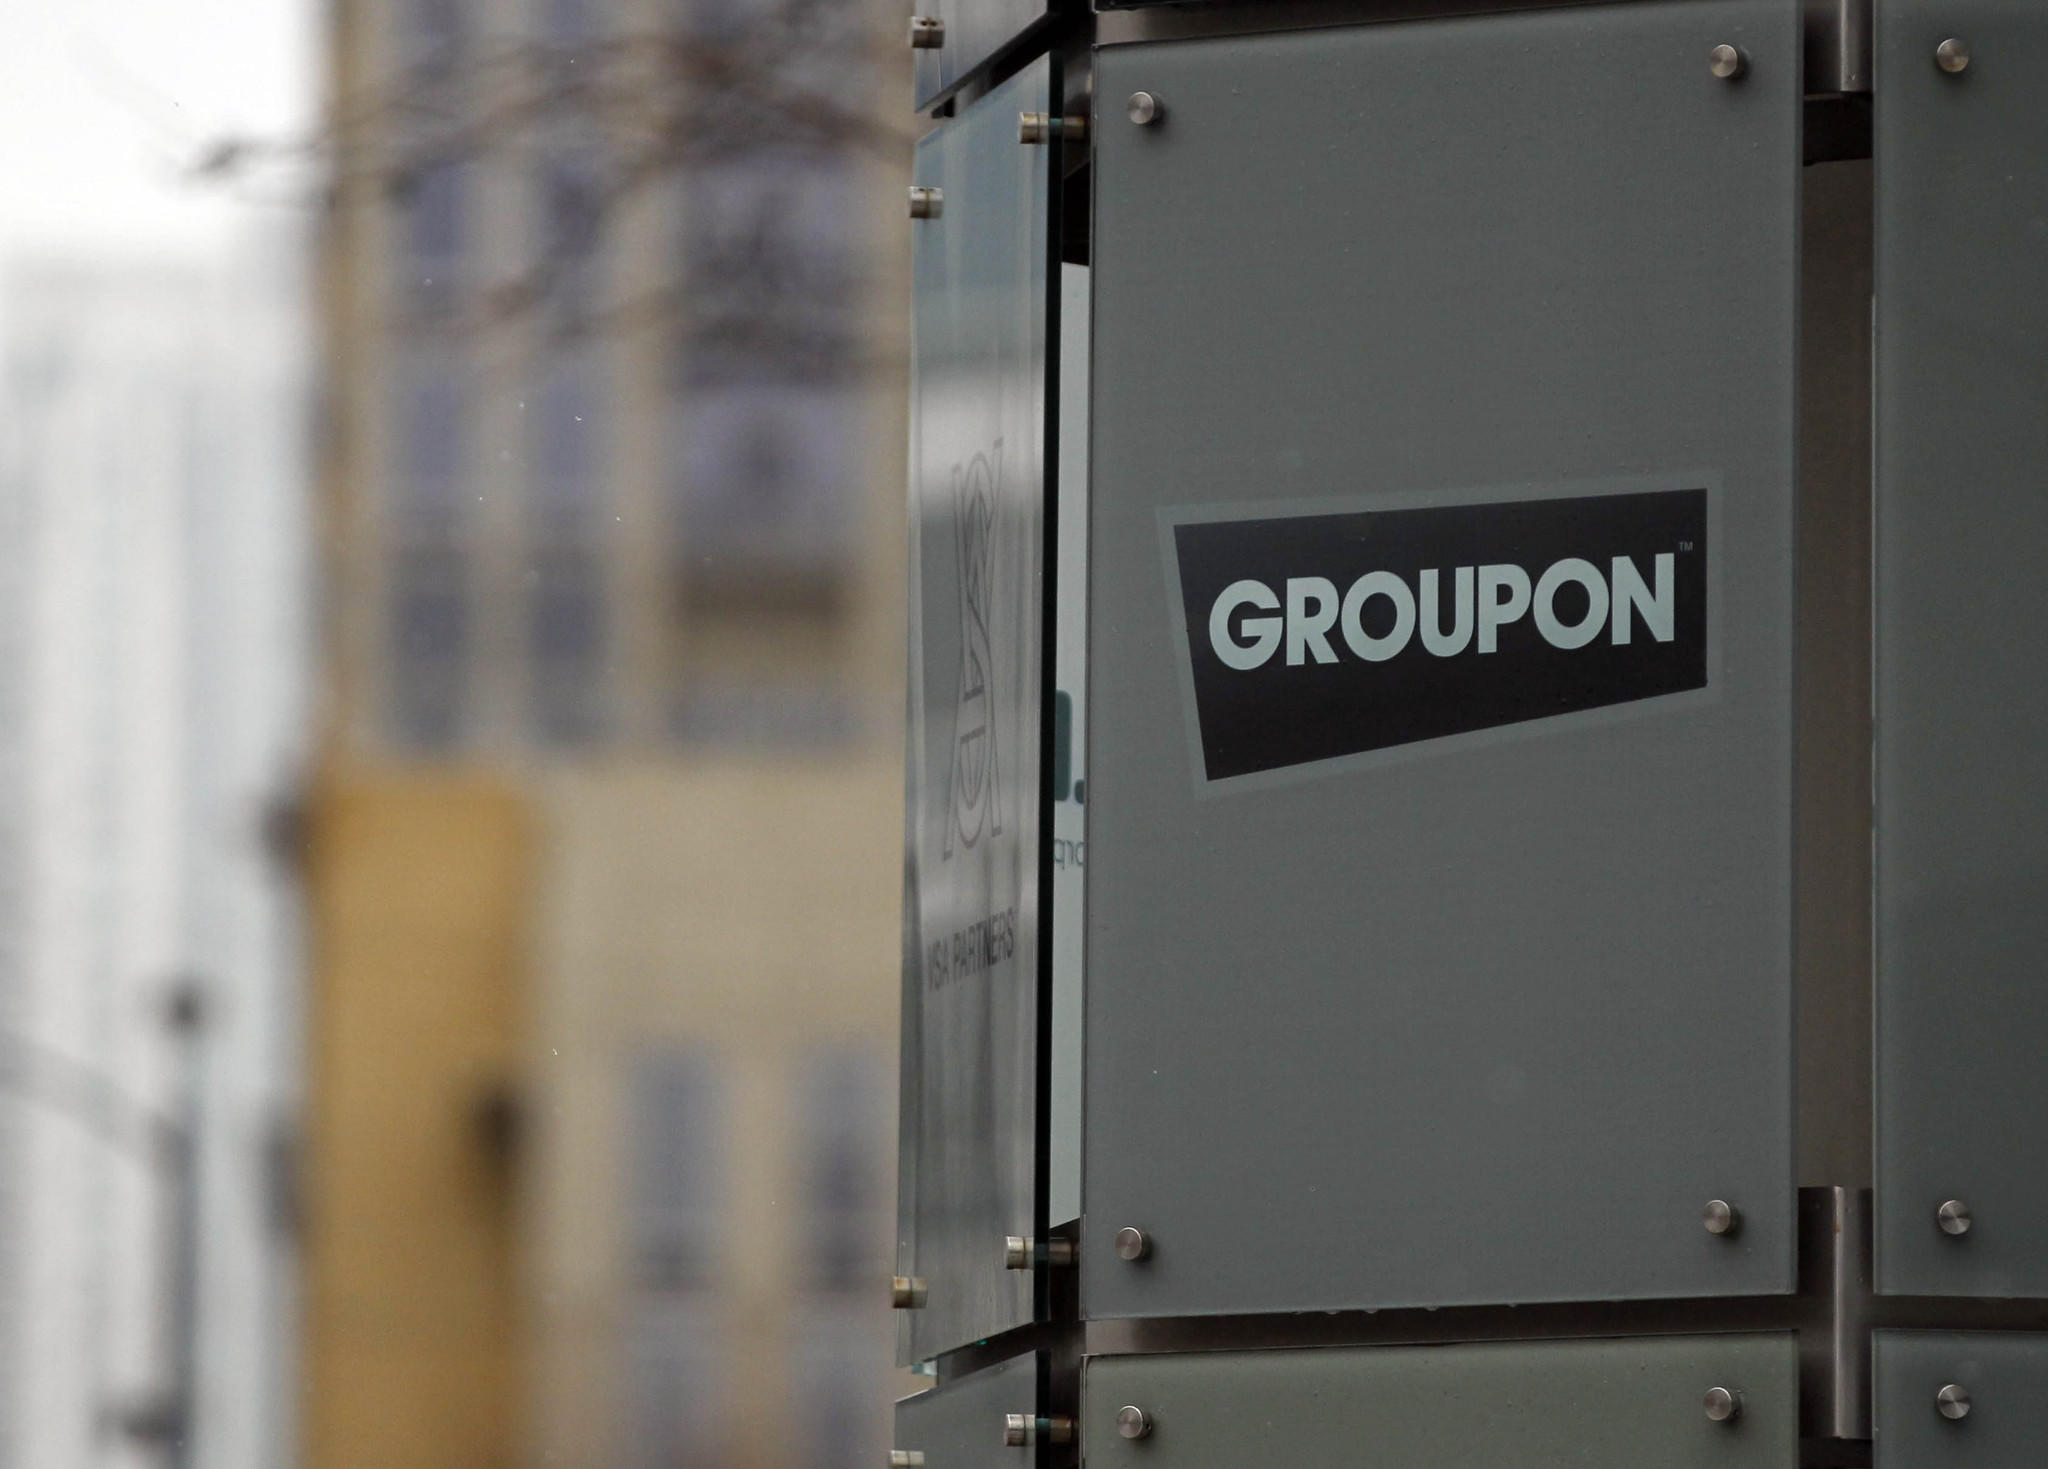 Groupon headquarters in Chicago.